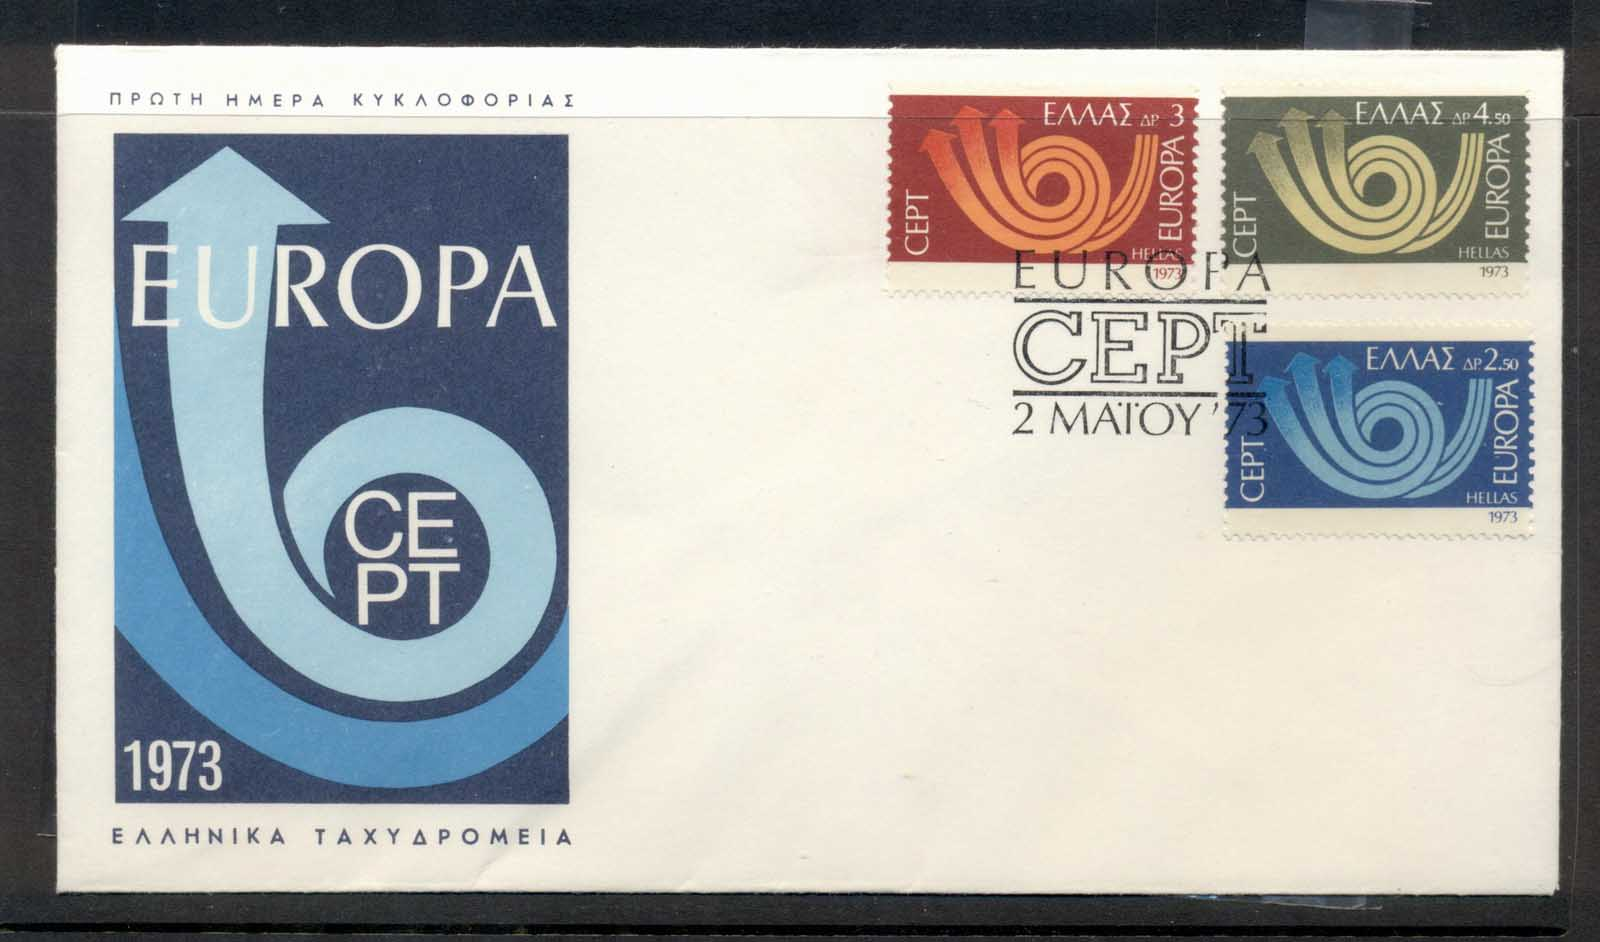 Greece 1973 Europa Posthorn Arrow FDC